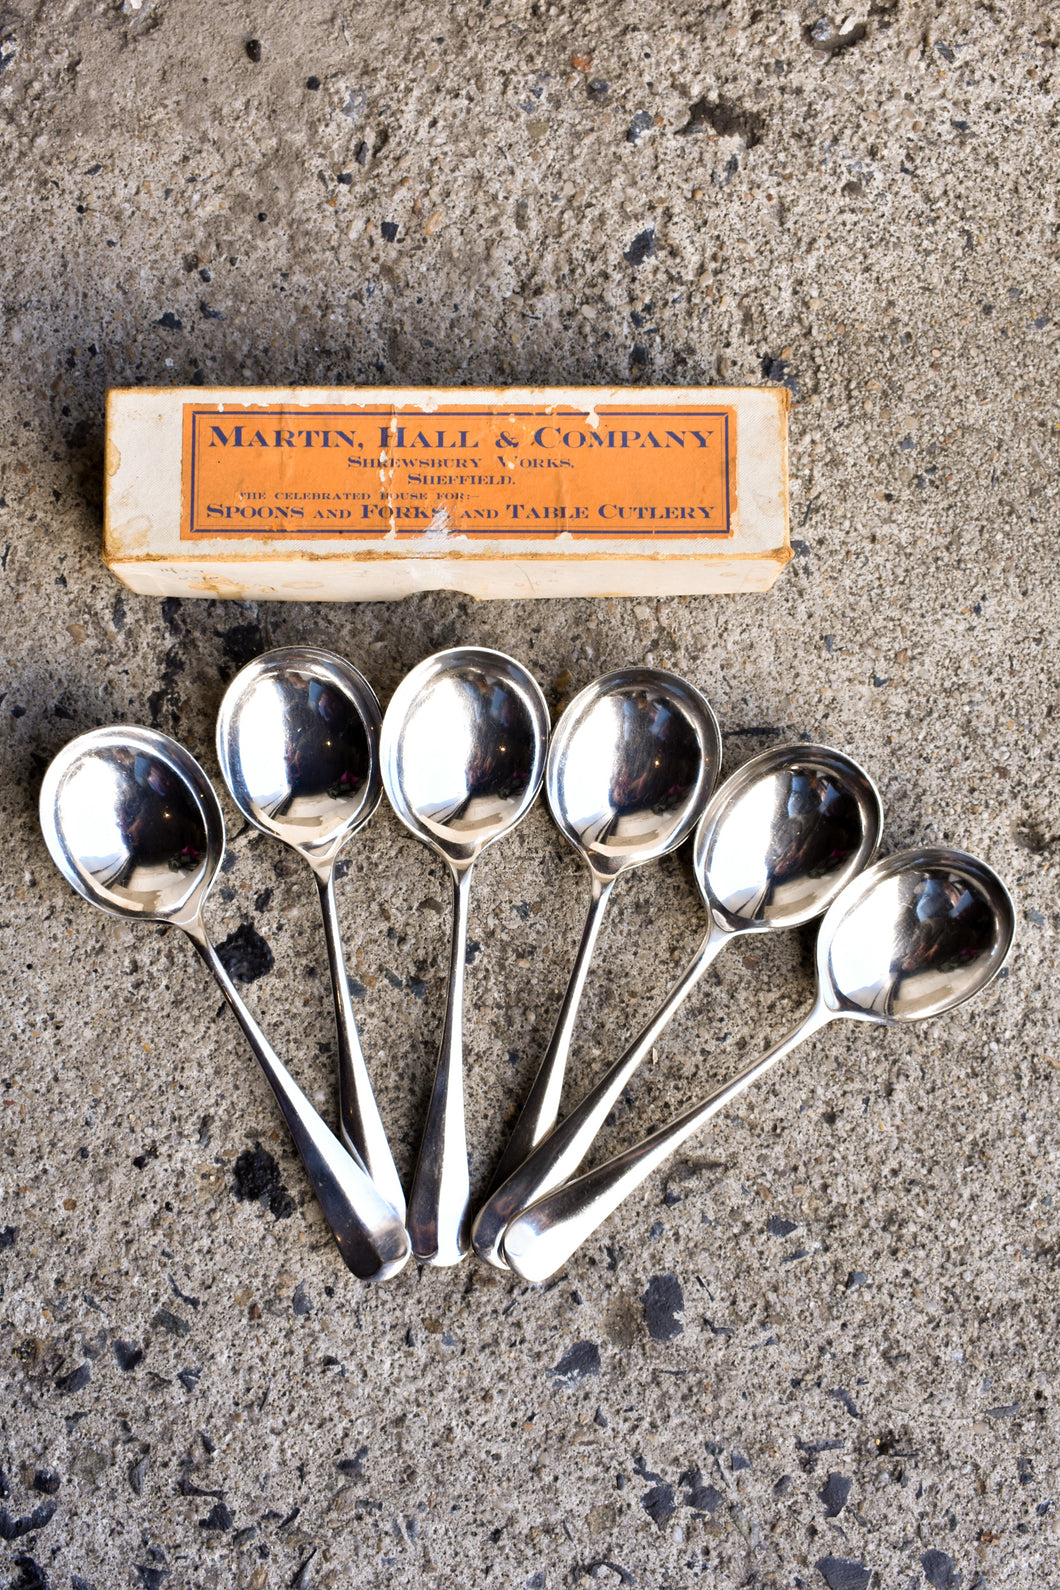 Martin, Hall & Company Set of 6 Dessert Spoons